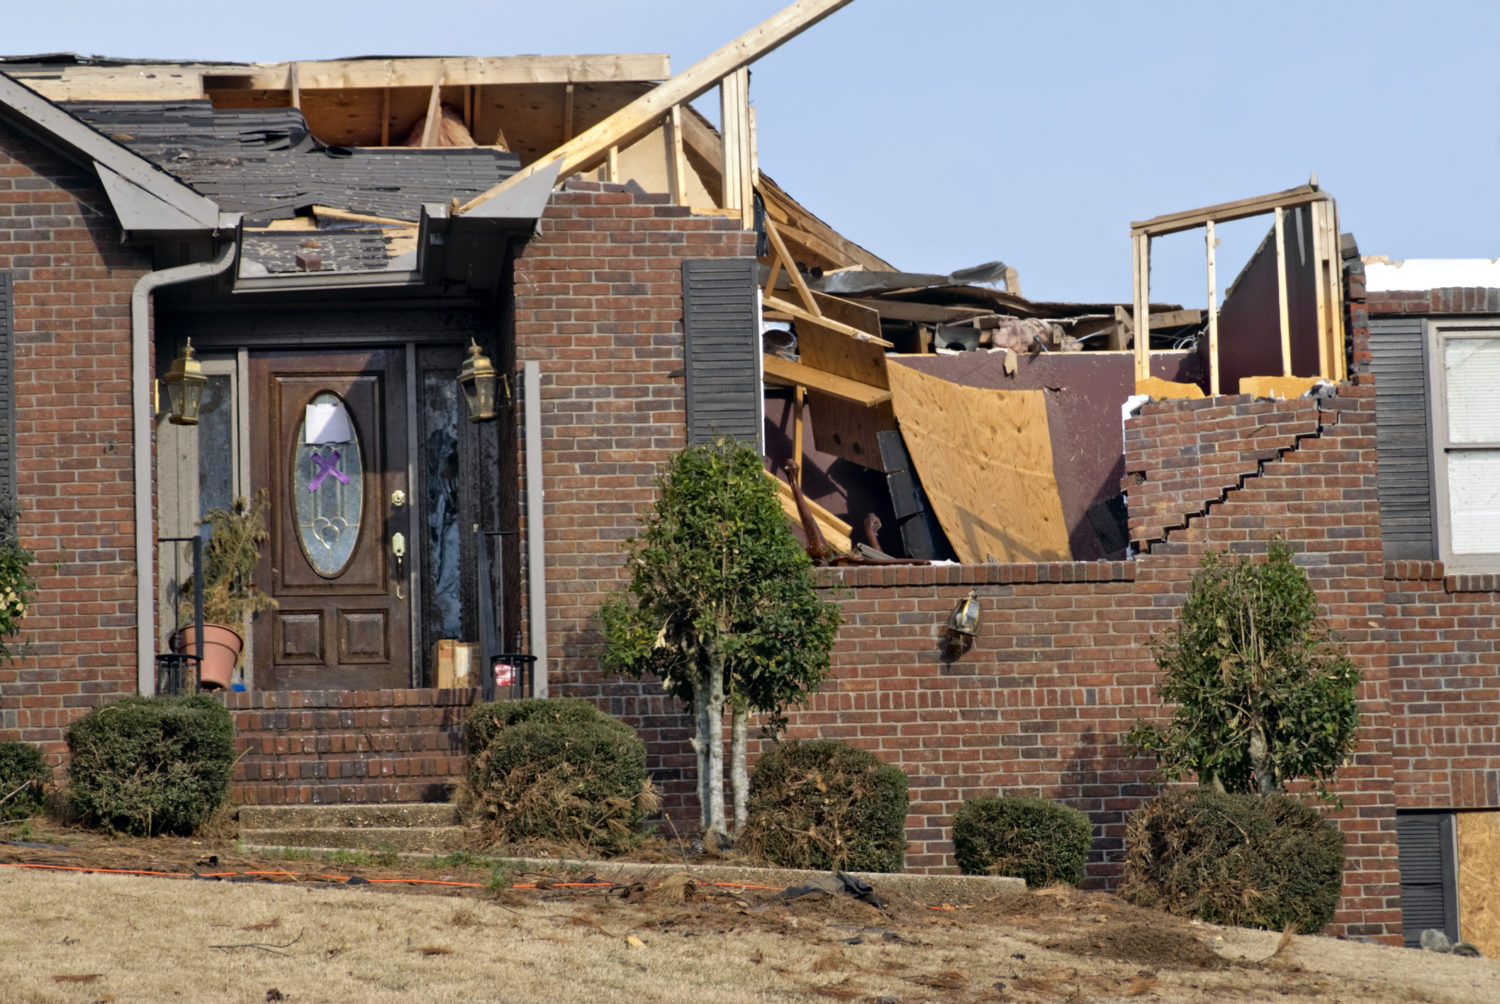 Brick home damaged by a tornado in Mississippi